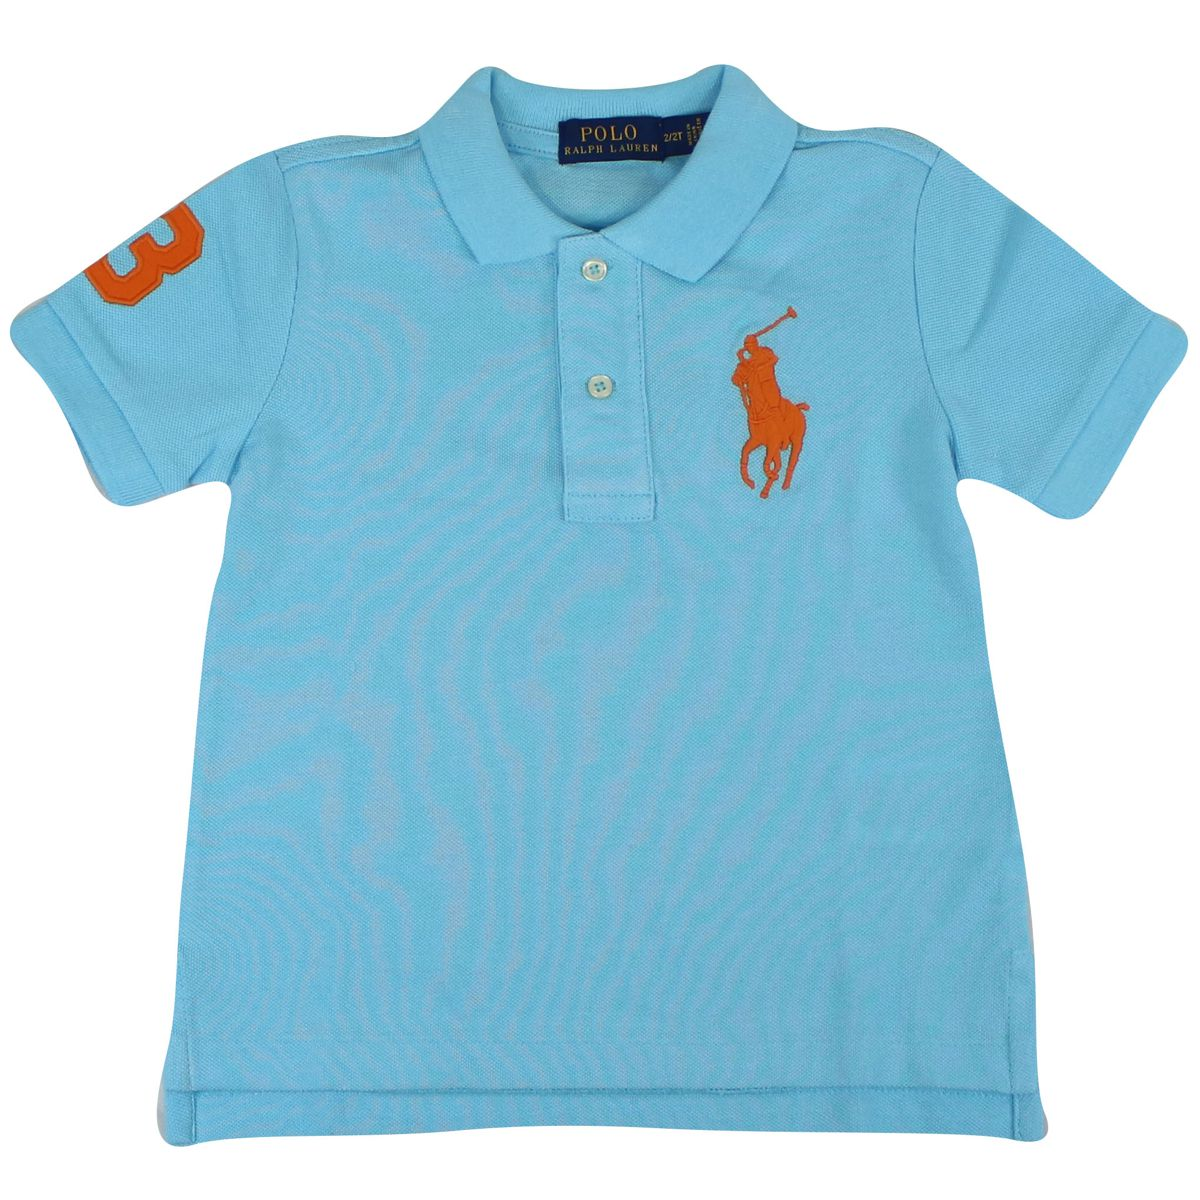 a81bd8913f Big pony polo